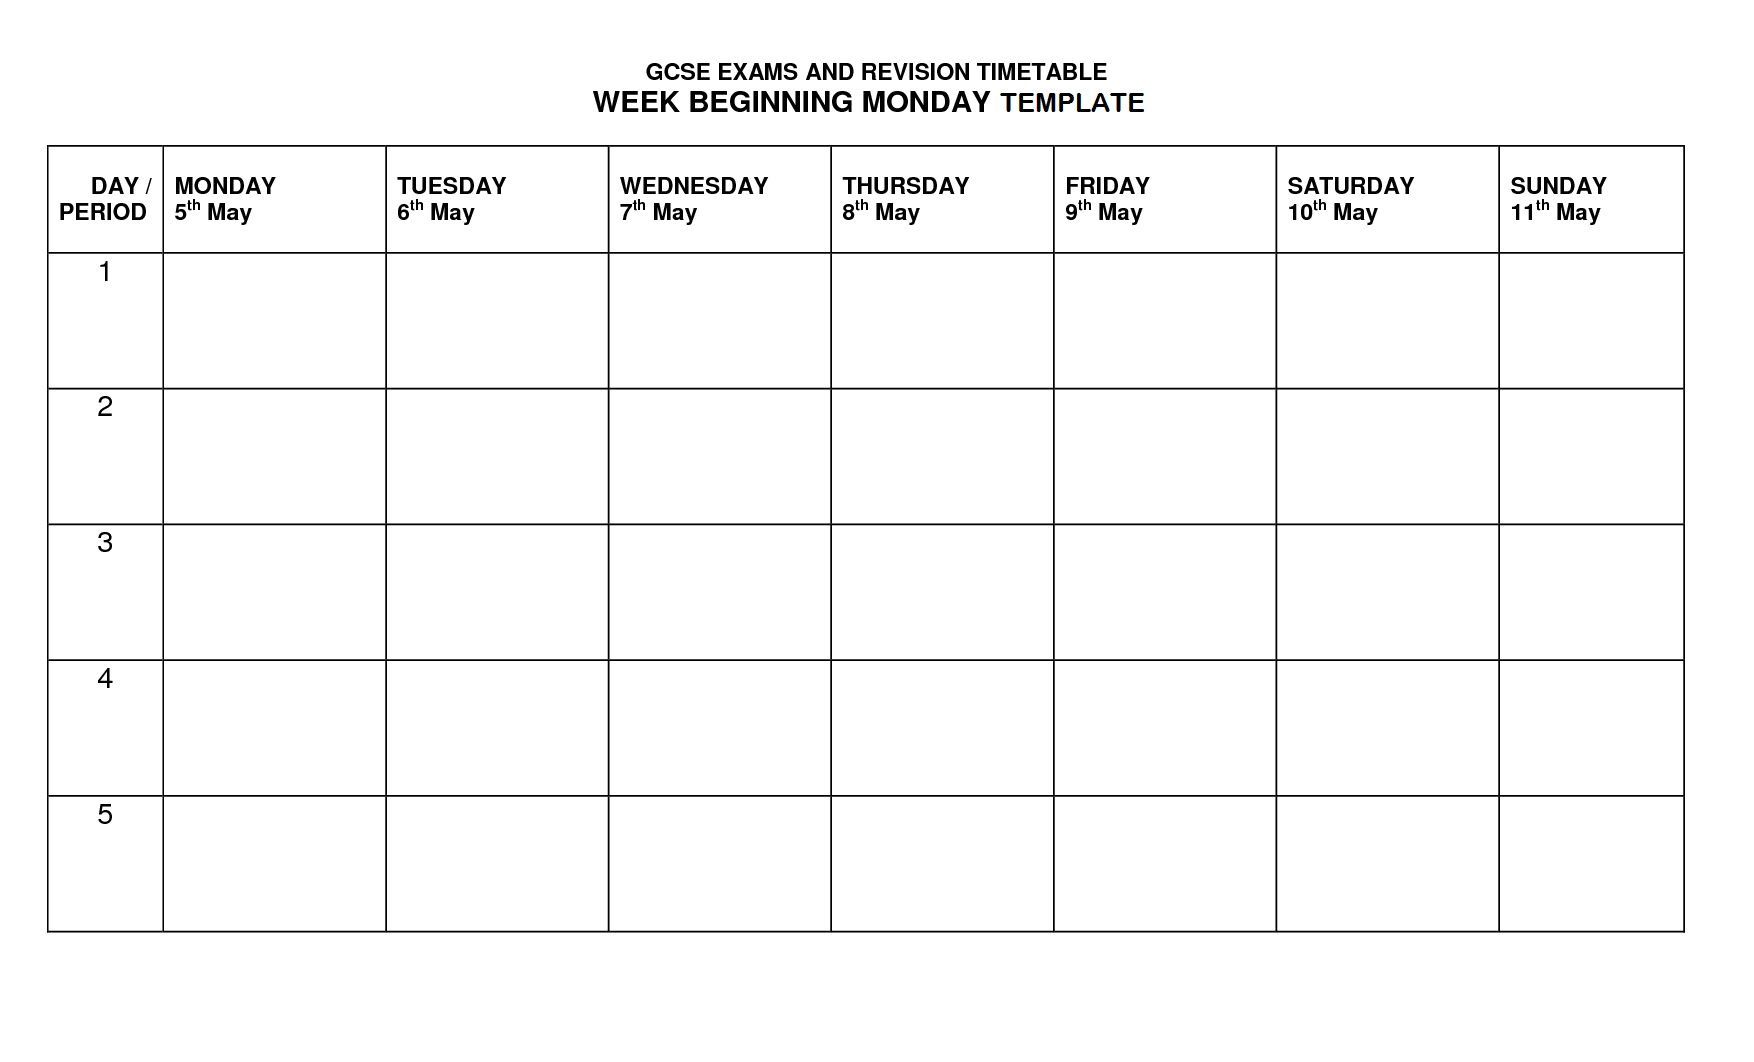 Timetable Template | Timetable Template, Class Schedule Throughout Blank Revision Timetable Template